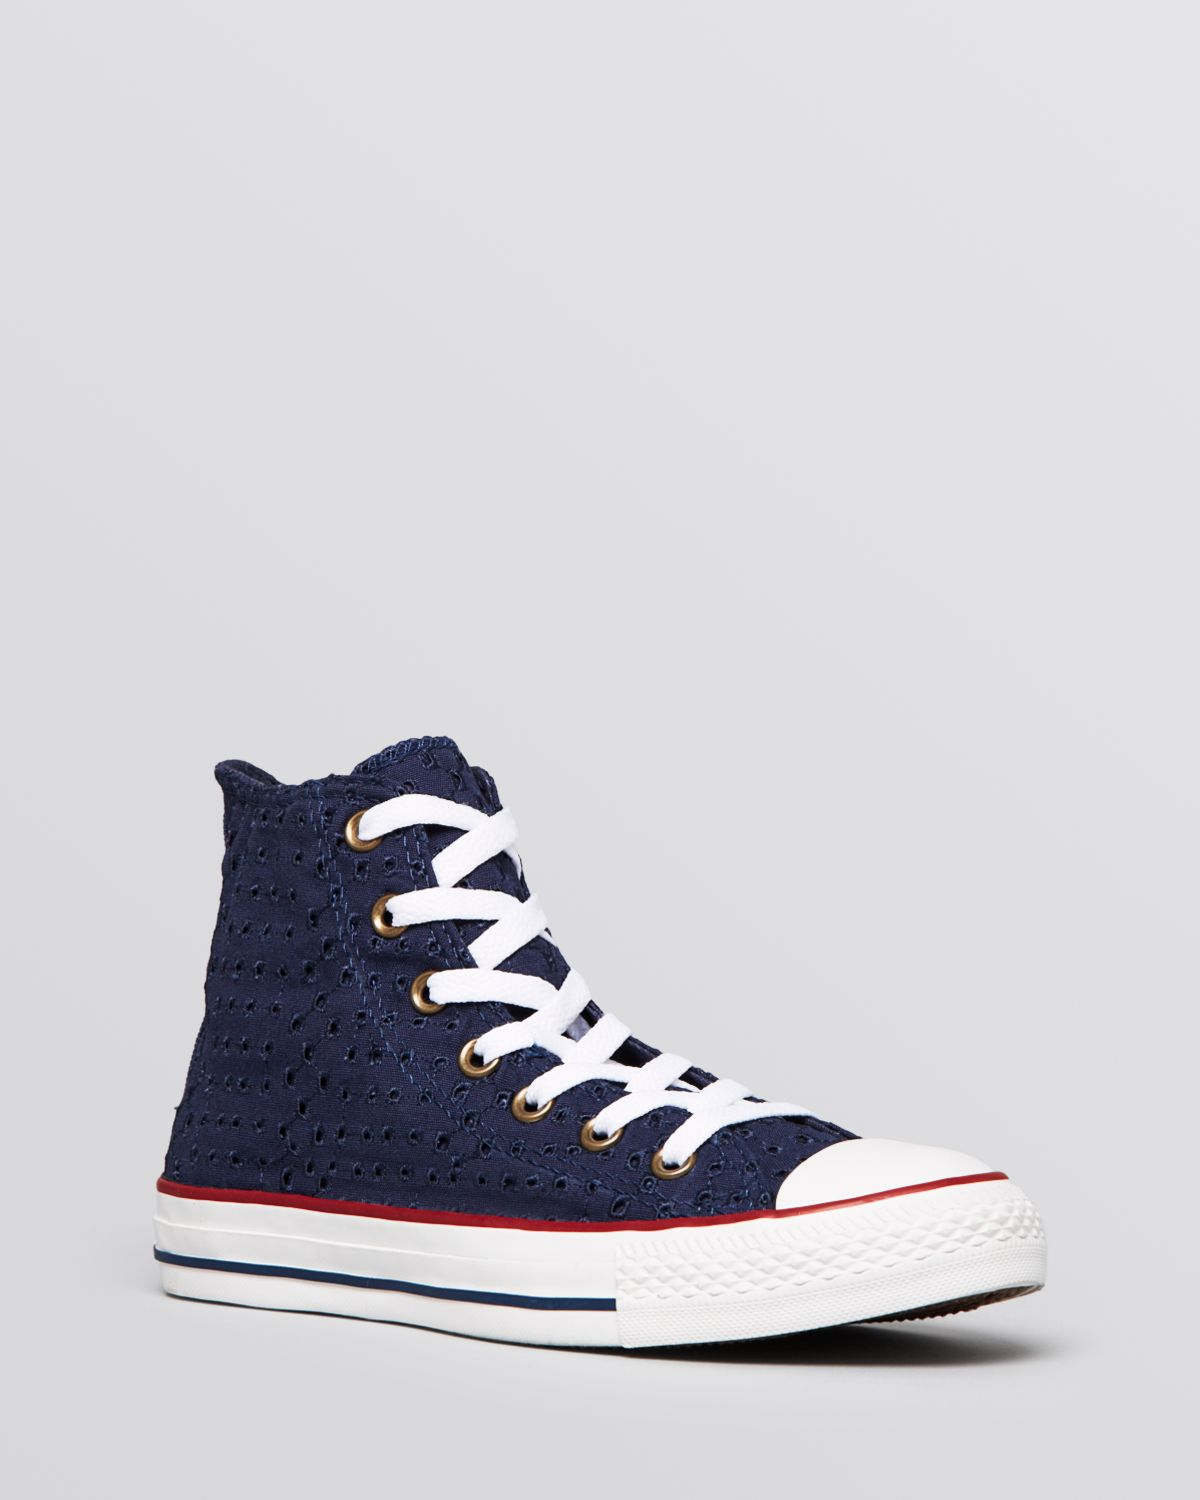 450e756ac2fb Lyst - Converse Lace Up High Top Sneakers Chuck Taylor All Star in Blue